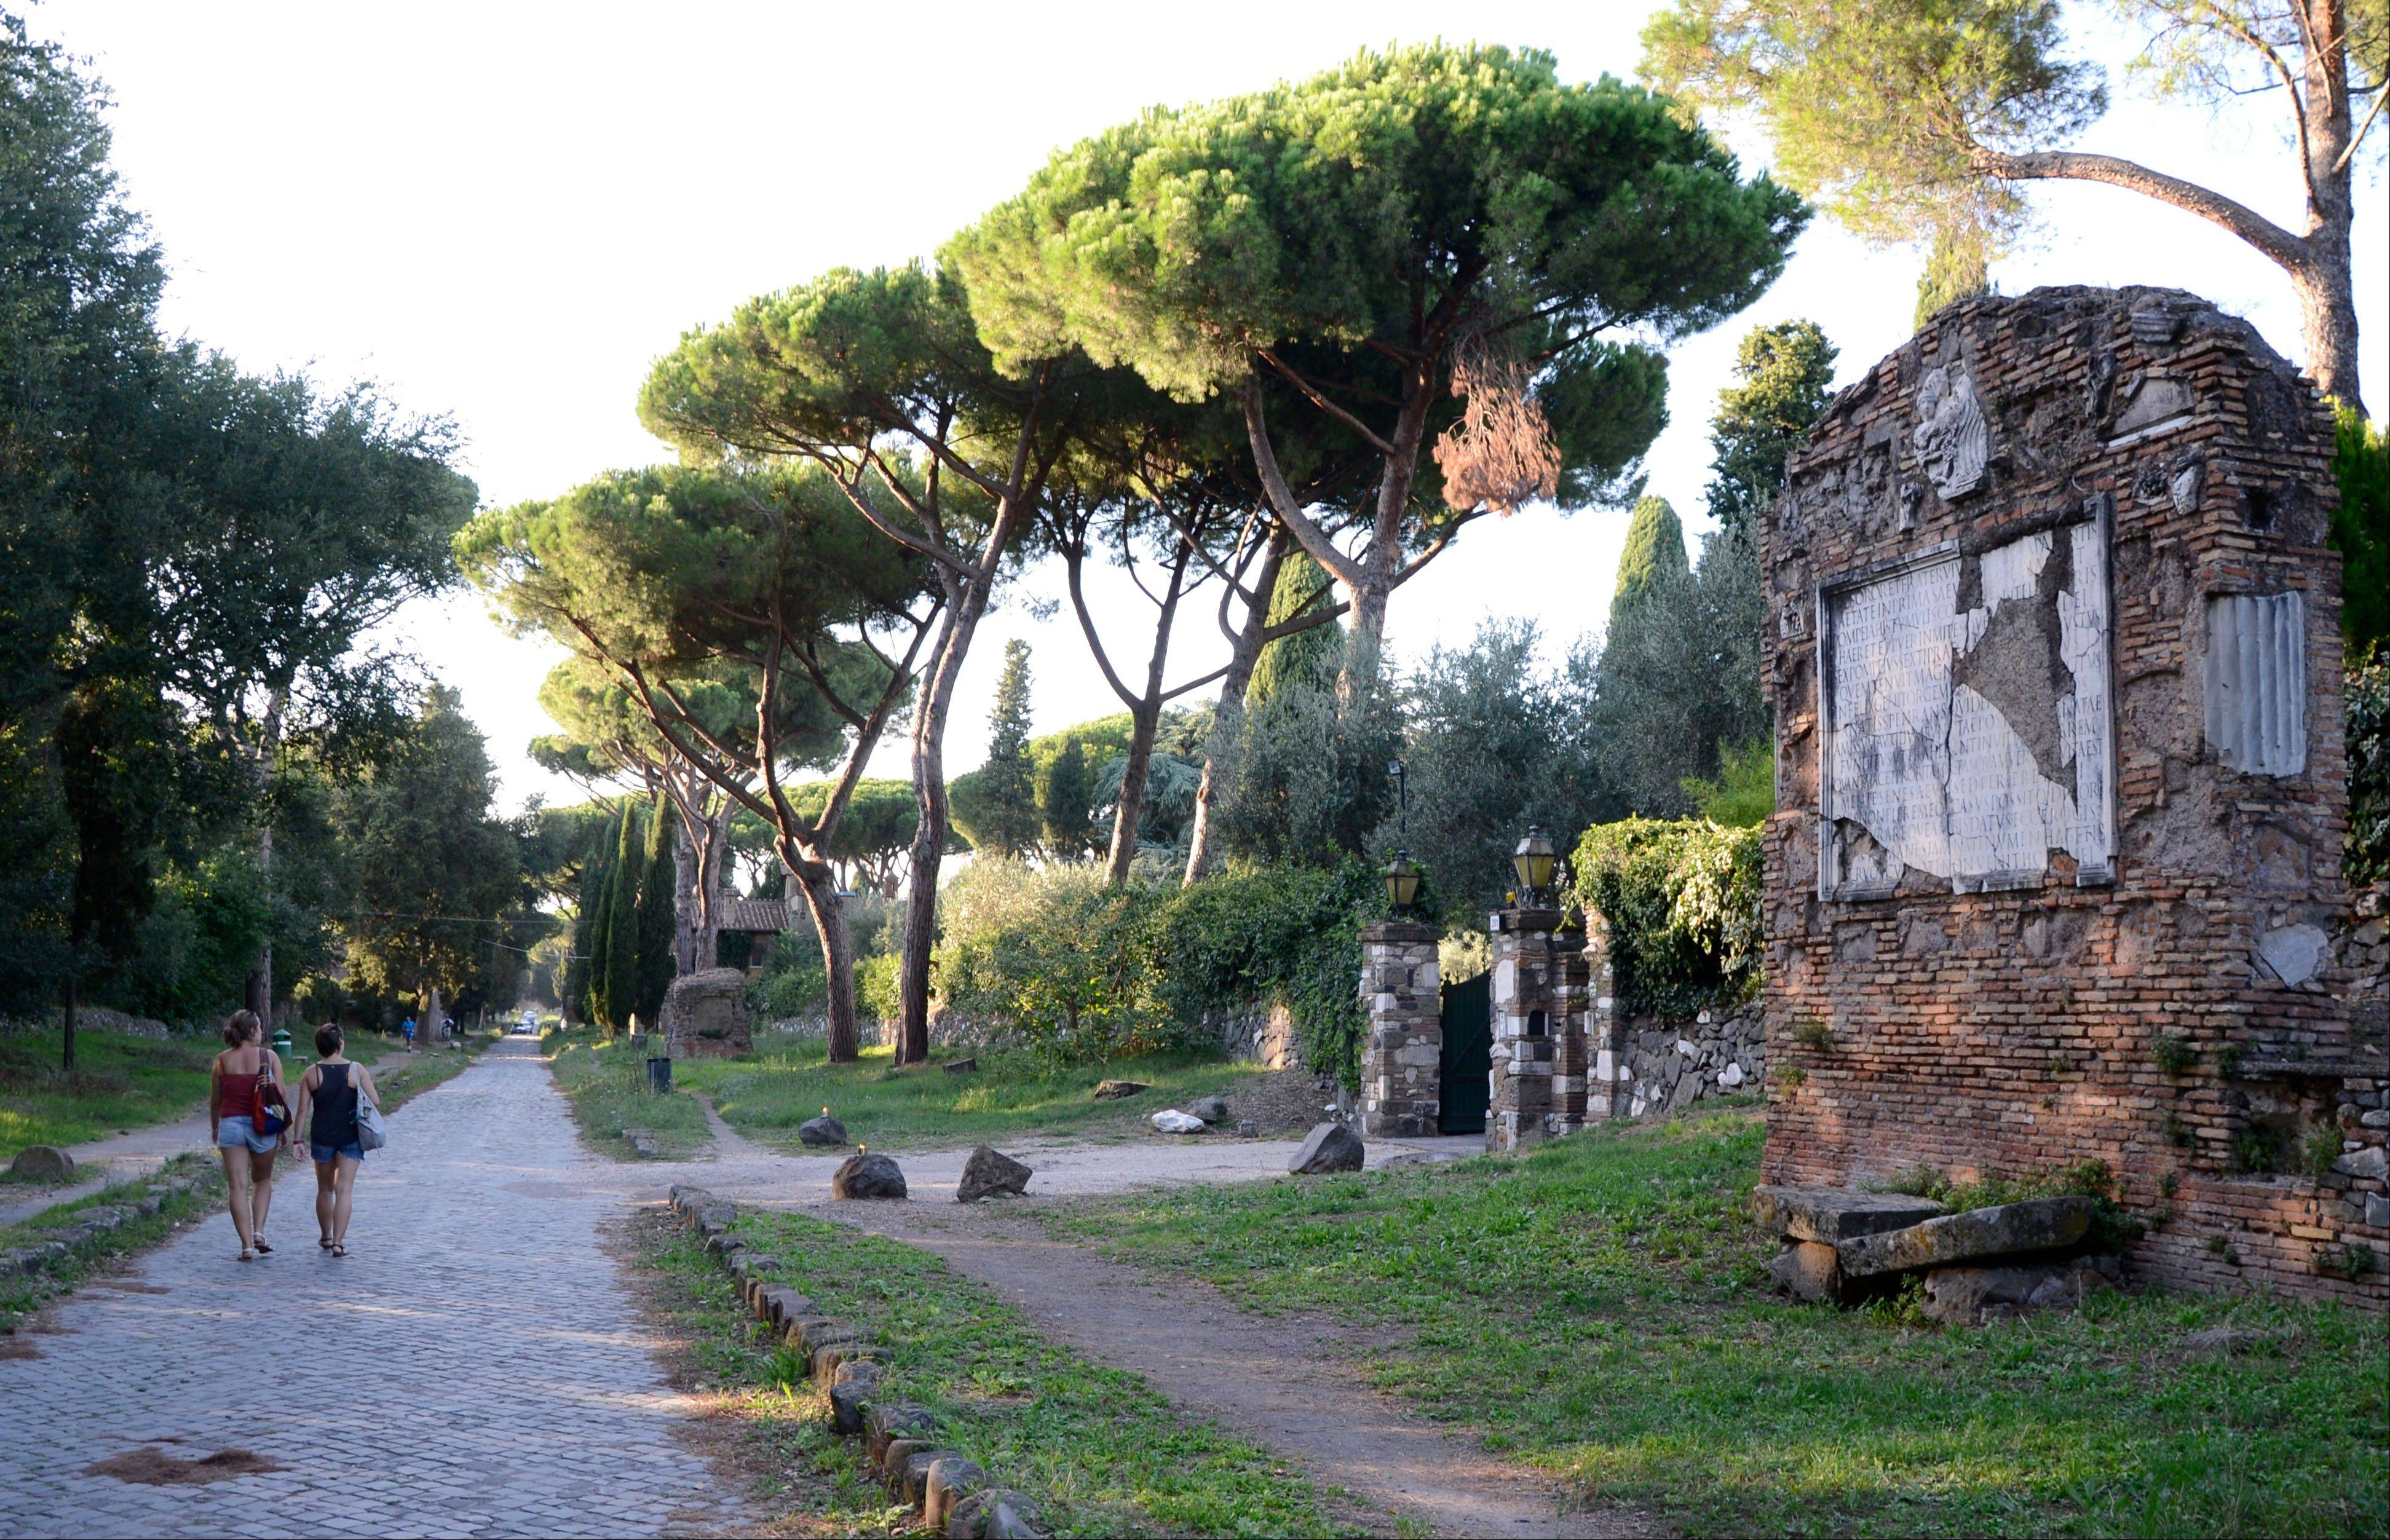 People walk past ruins along the Appia Antica, the ancient Roman Appian Way, in Rome. A walk on the Appia is a wonderful way to feel the city's past beneath your feet.